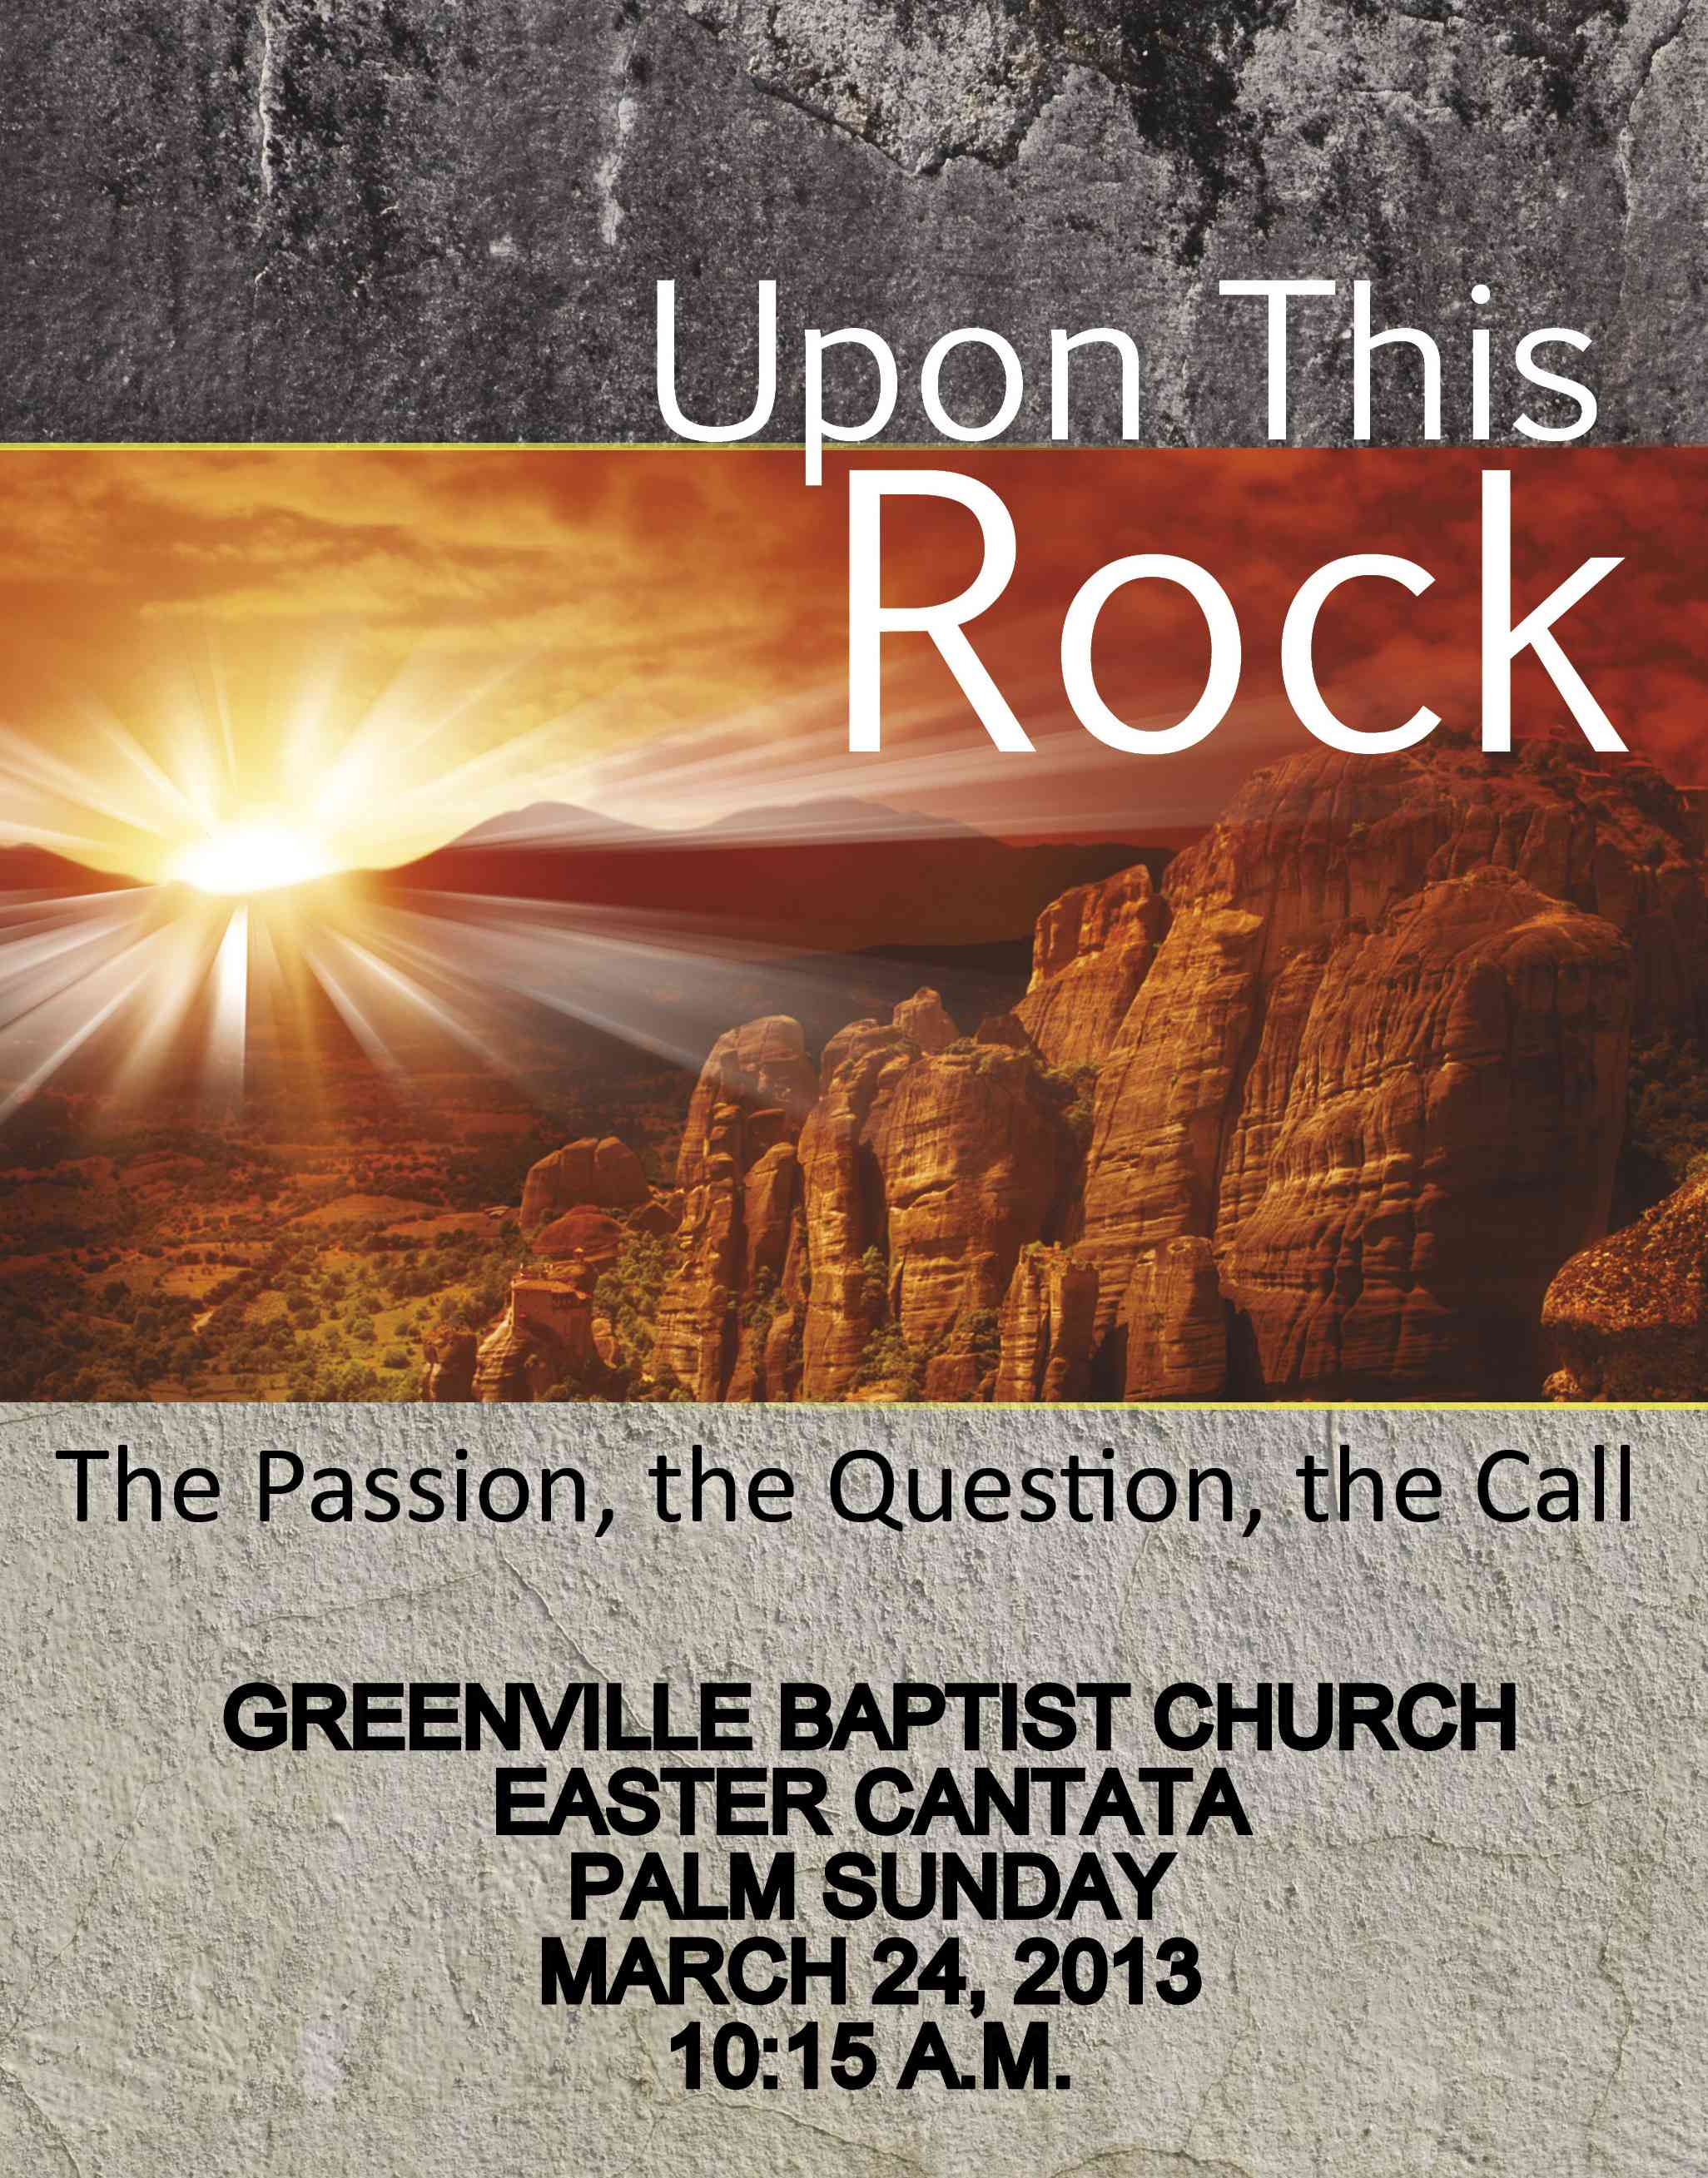 Easter Cantata - Palm Sunday - Click for Details!